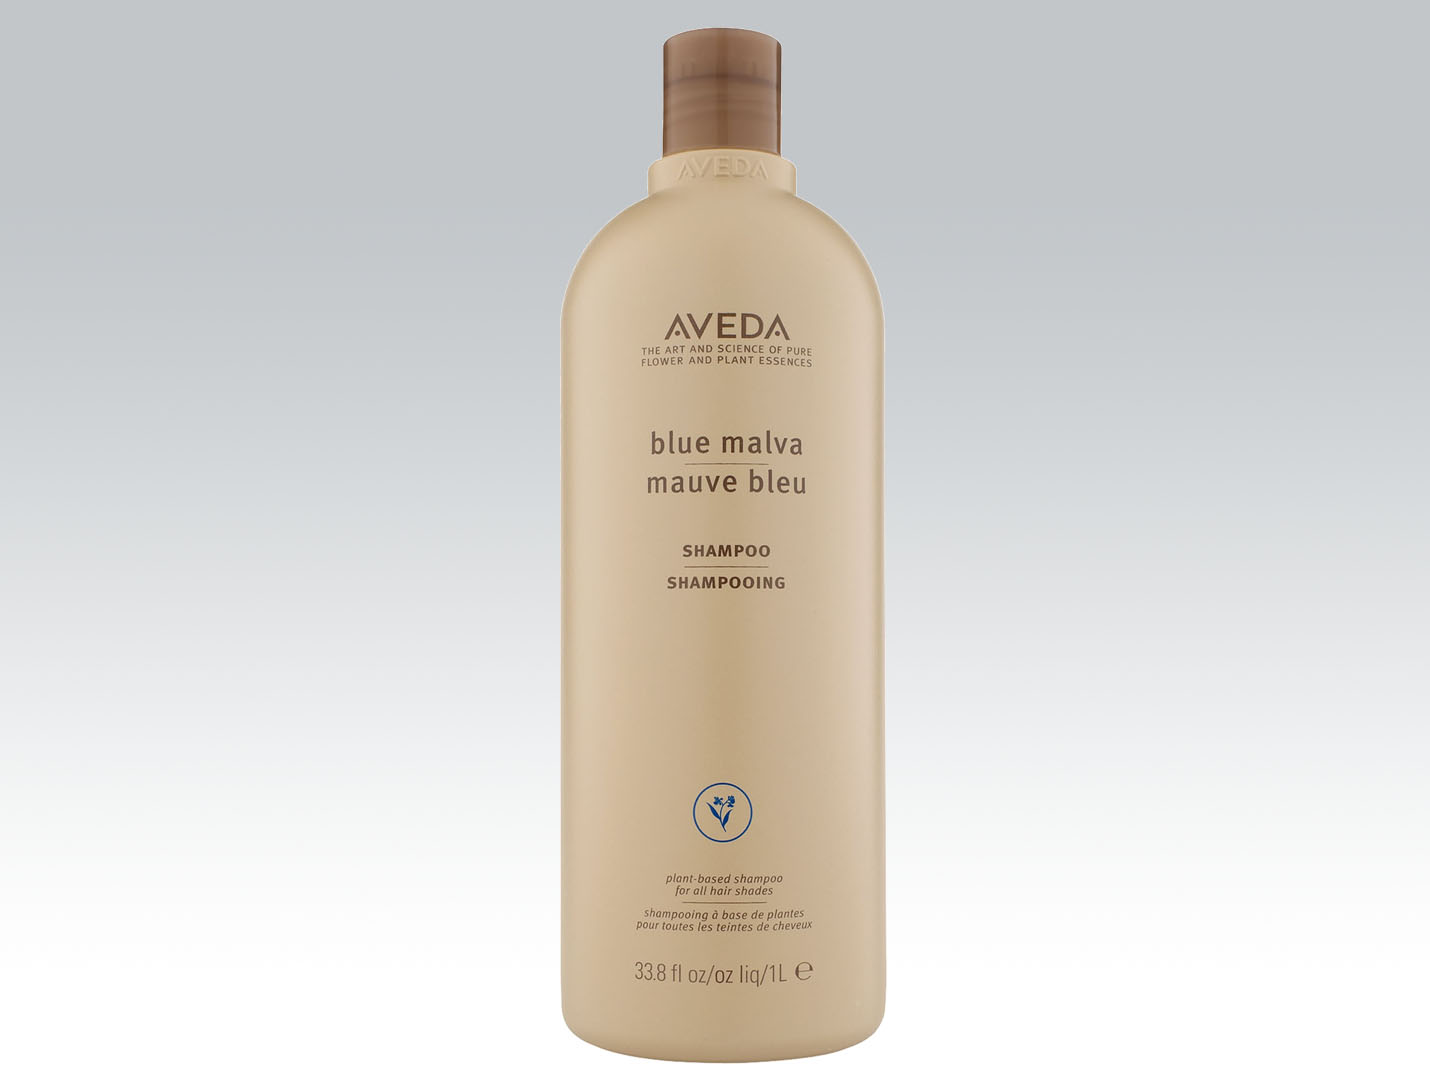 Aveda shampoo for gray hair